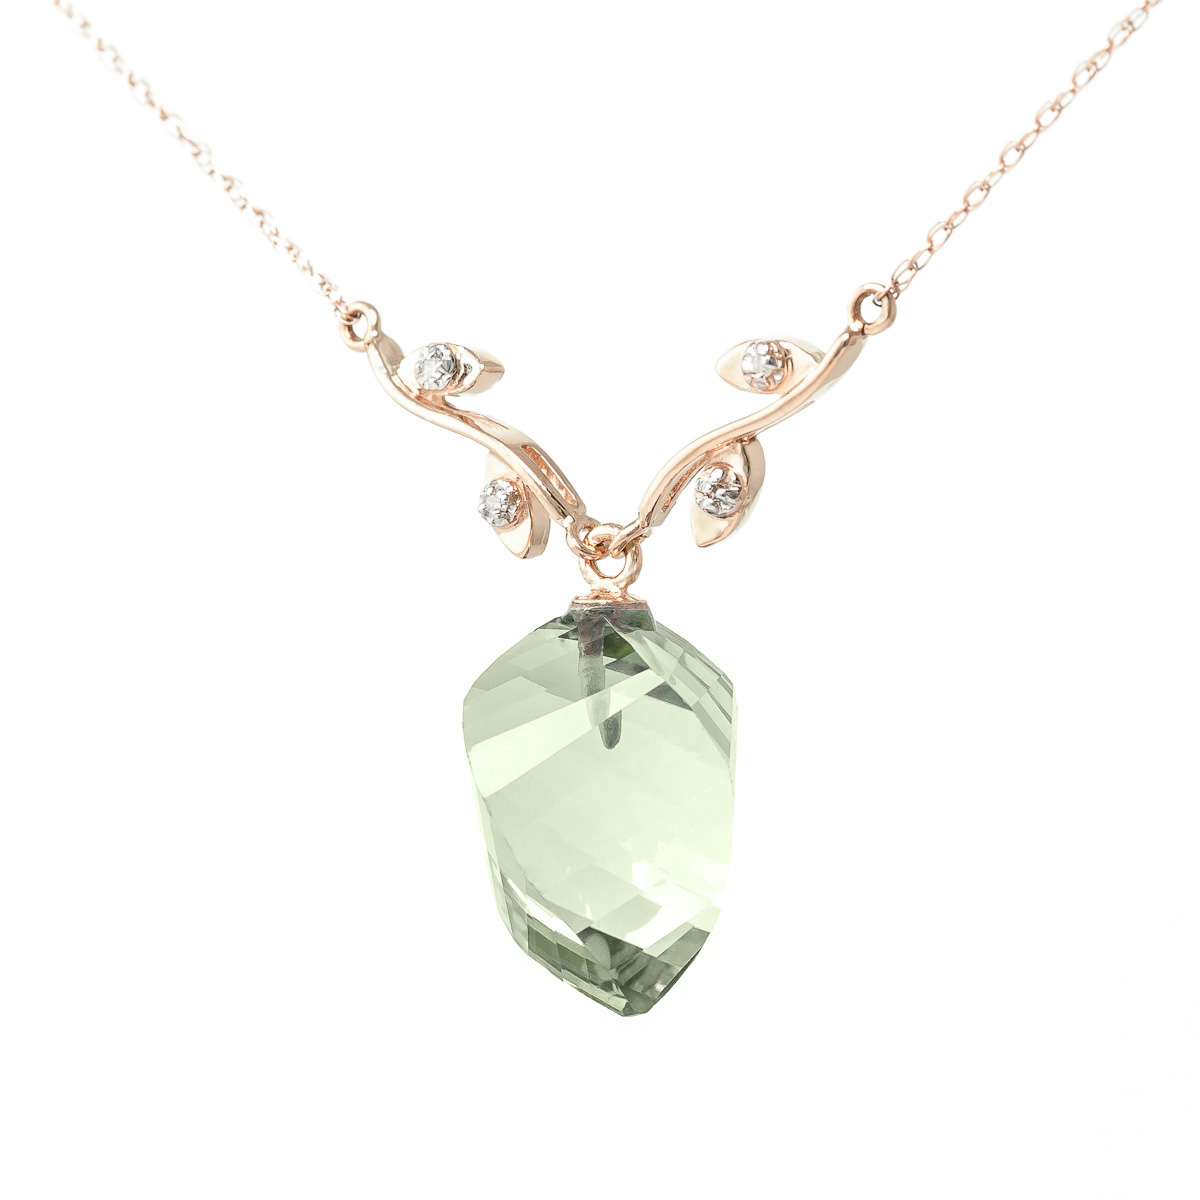 Twisted briolette cut green amethyst pendant necklace 1302 ctw in twisted briolette cut green amethyst pendant necklace 1302 ctw in 9ct rose gold aloadofball Image collections